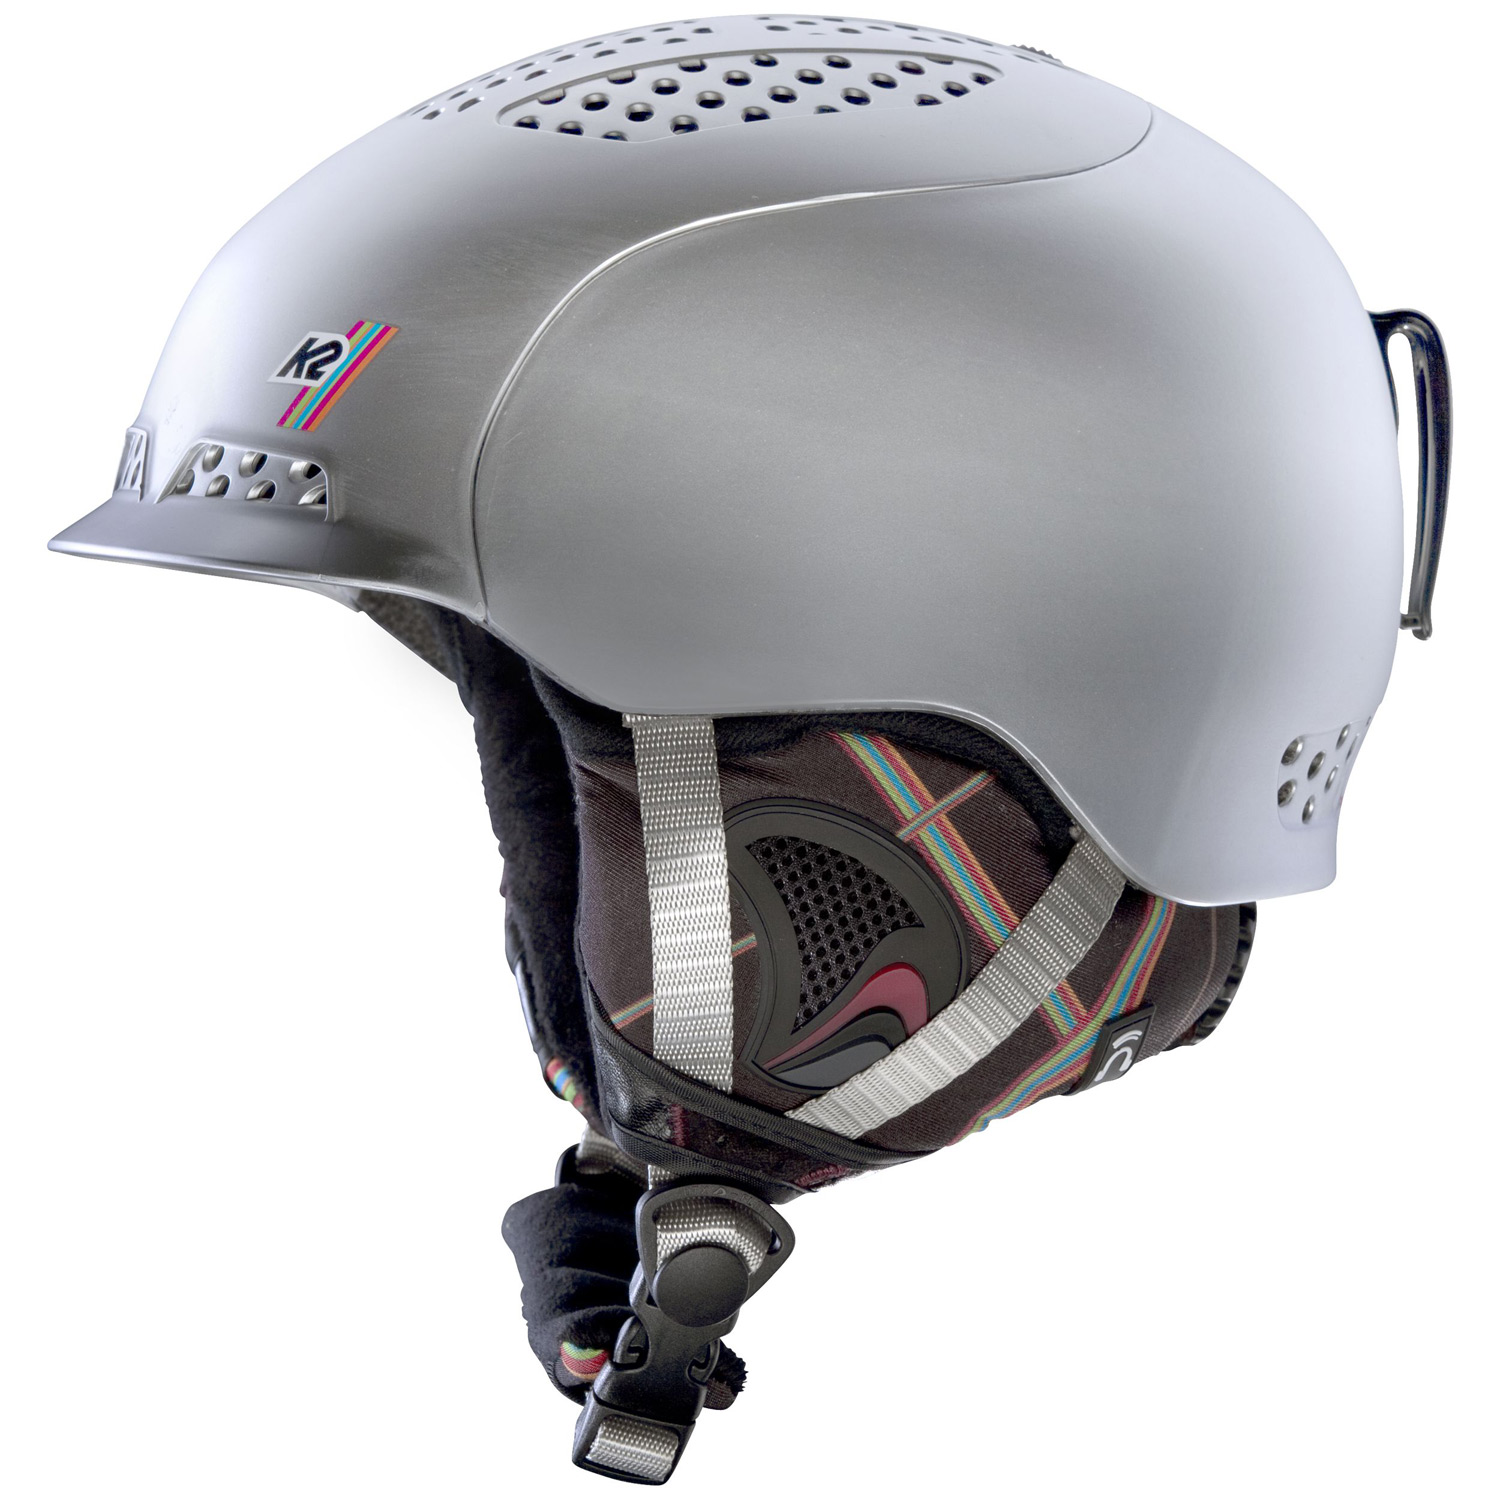 Ski Key Features of the K2 Virtue Ski Helmet:  CONSTRUCTION: Hybrid  FEATURES: Dual Active Matrix Venting, K2dialed Fit System, washable Full-Wrap Liner System, Level 3 Baseline Audio System  SIZES: Small (51-55cm , Med (55-59cm , L/XL (59-62cm   COLORS: Black, Silver  WEIGHT: 430g - $95.95